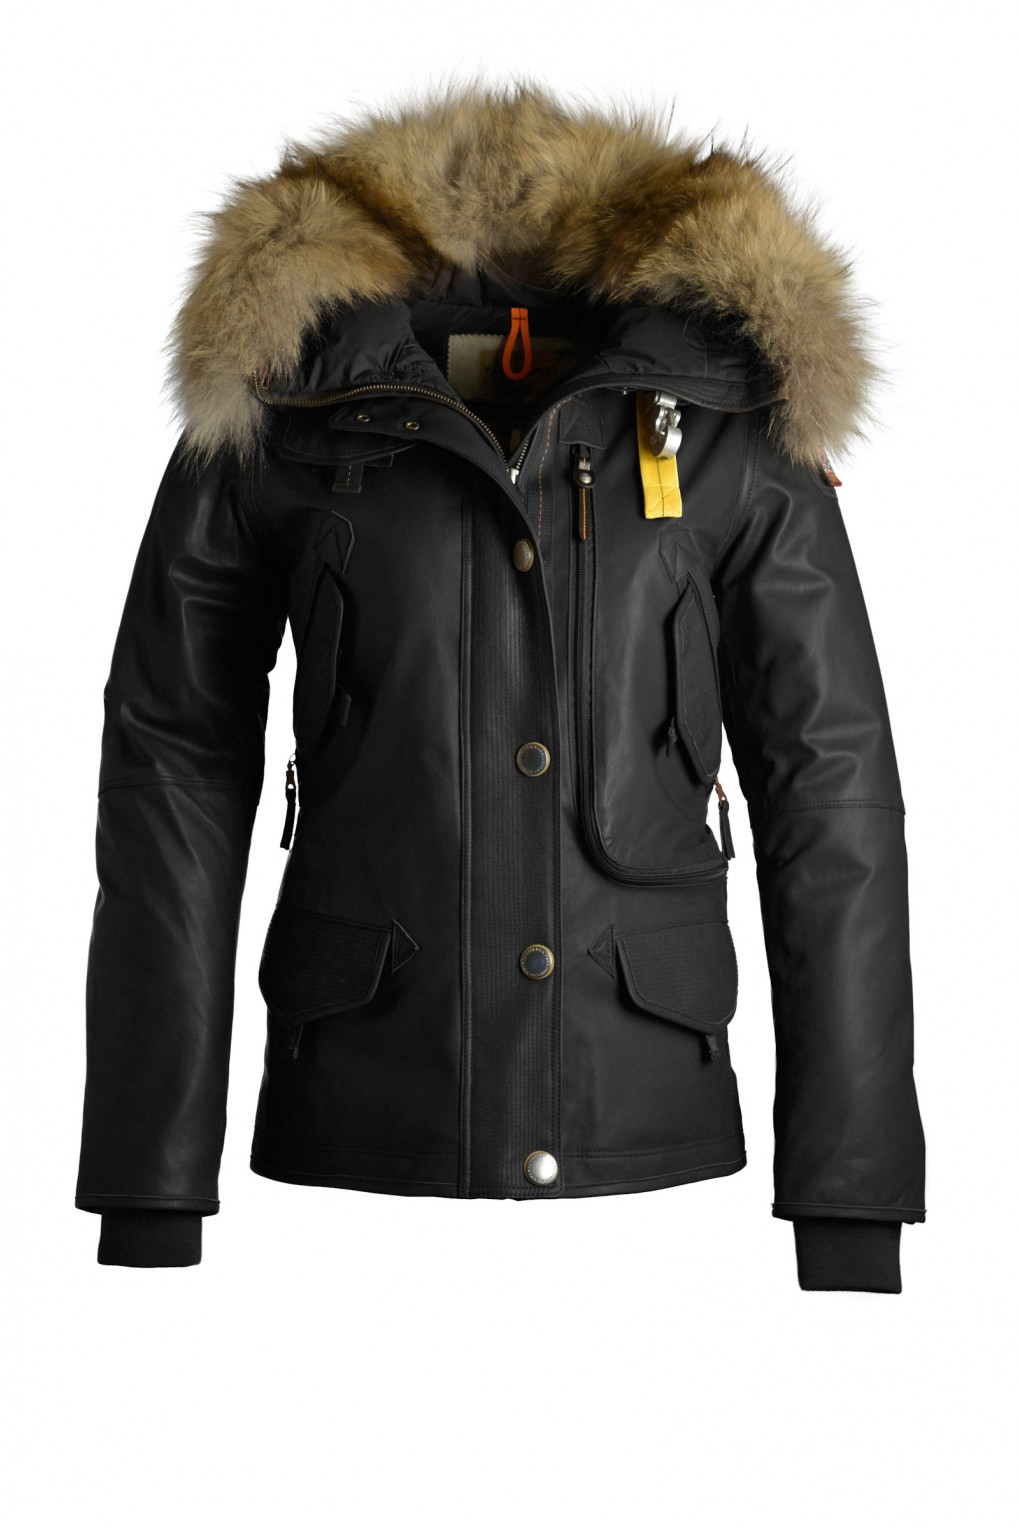 parajumpers DORIS LEATHER woman outerwear Black